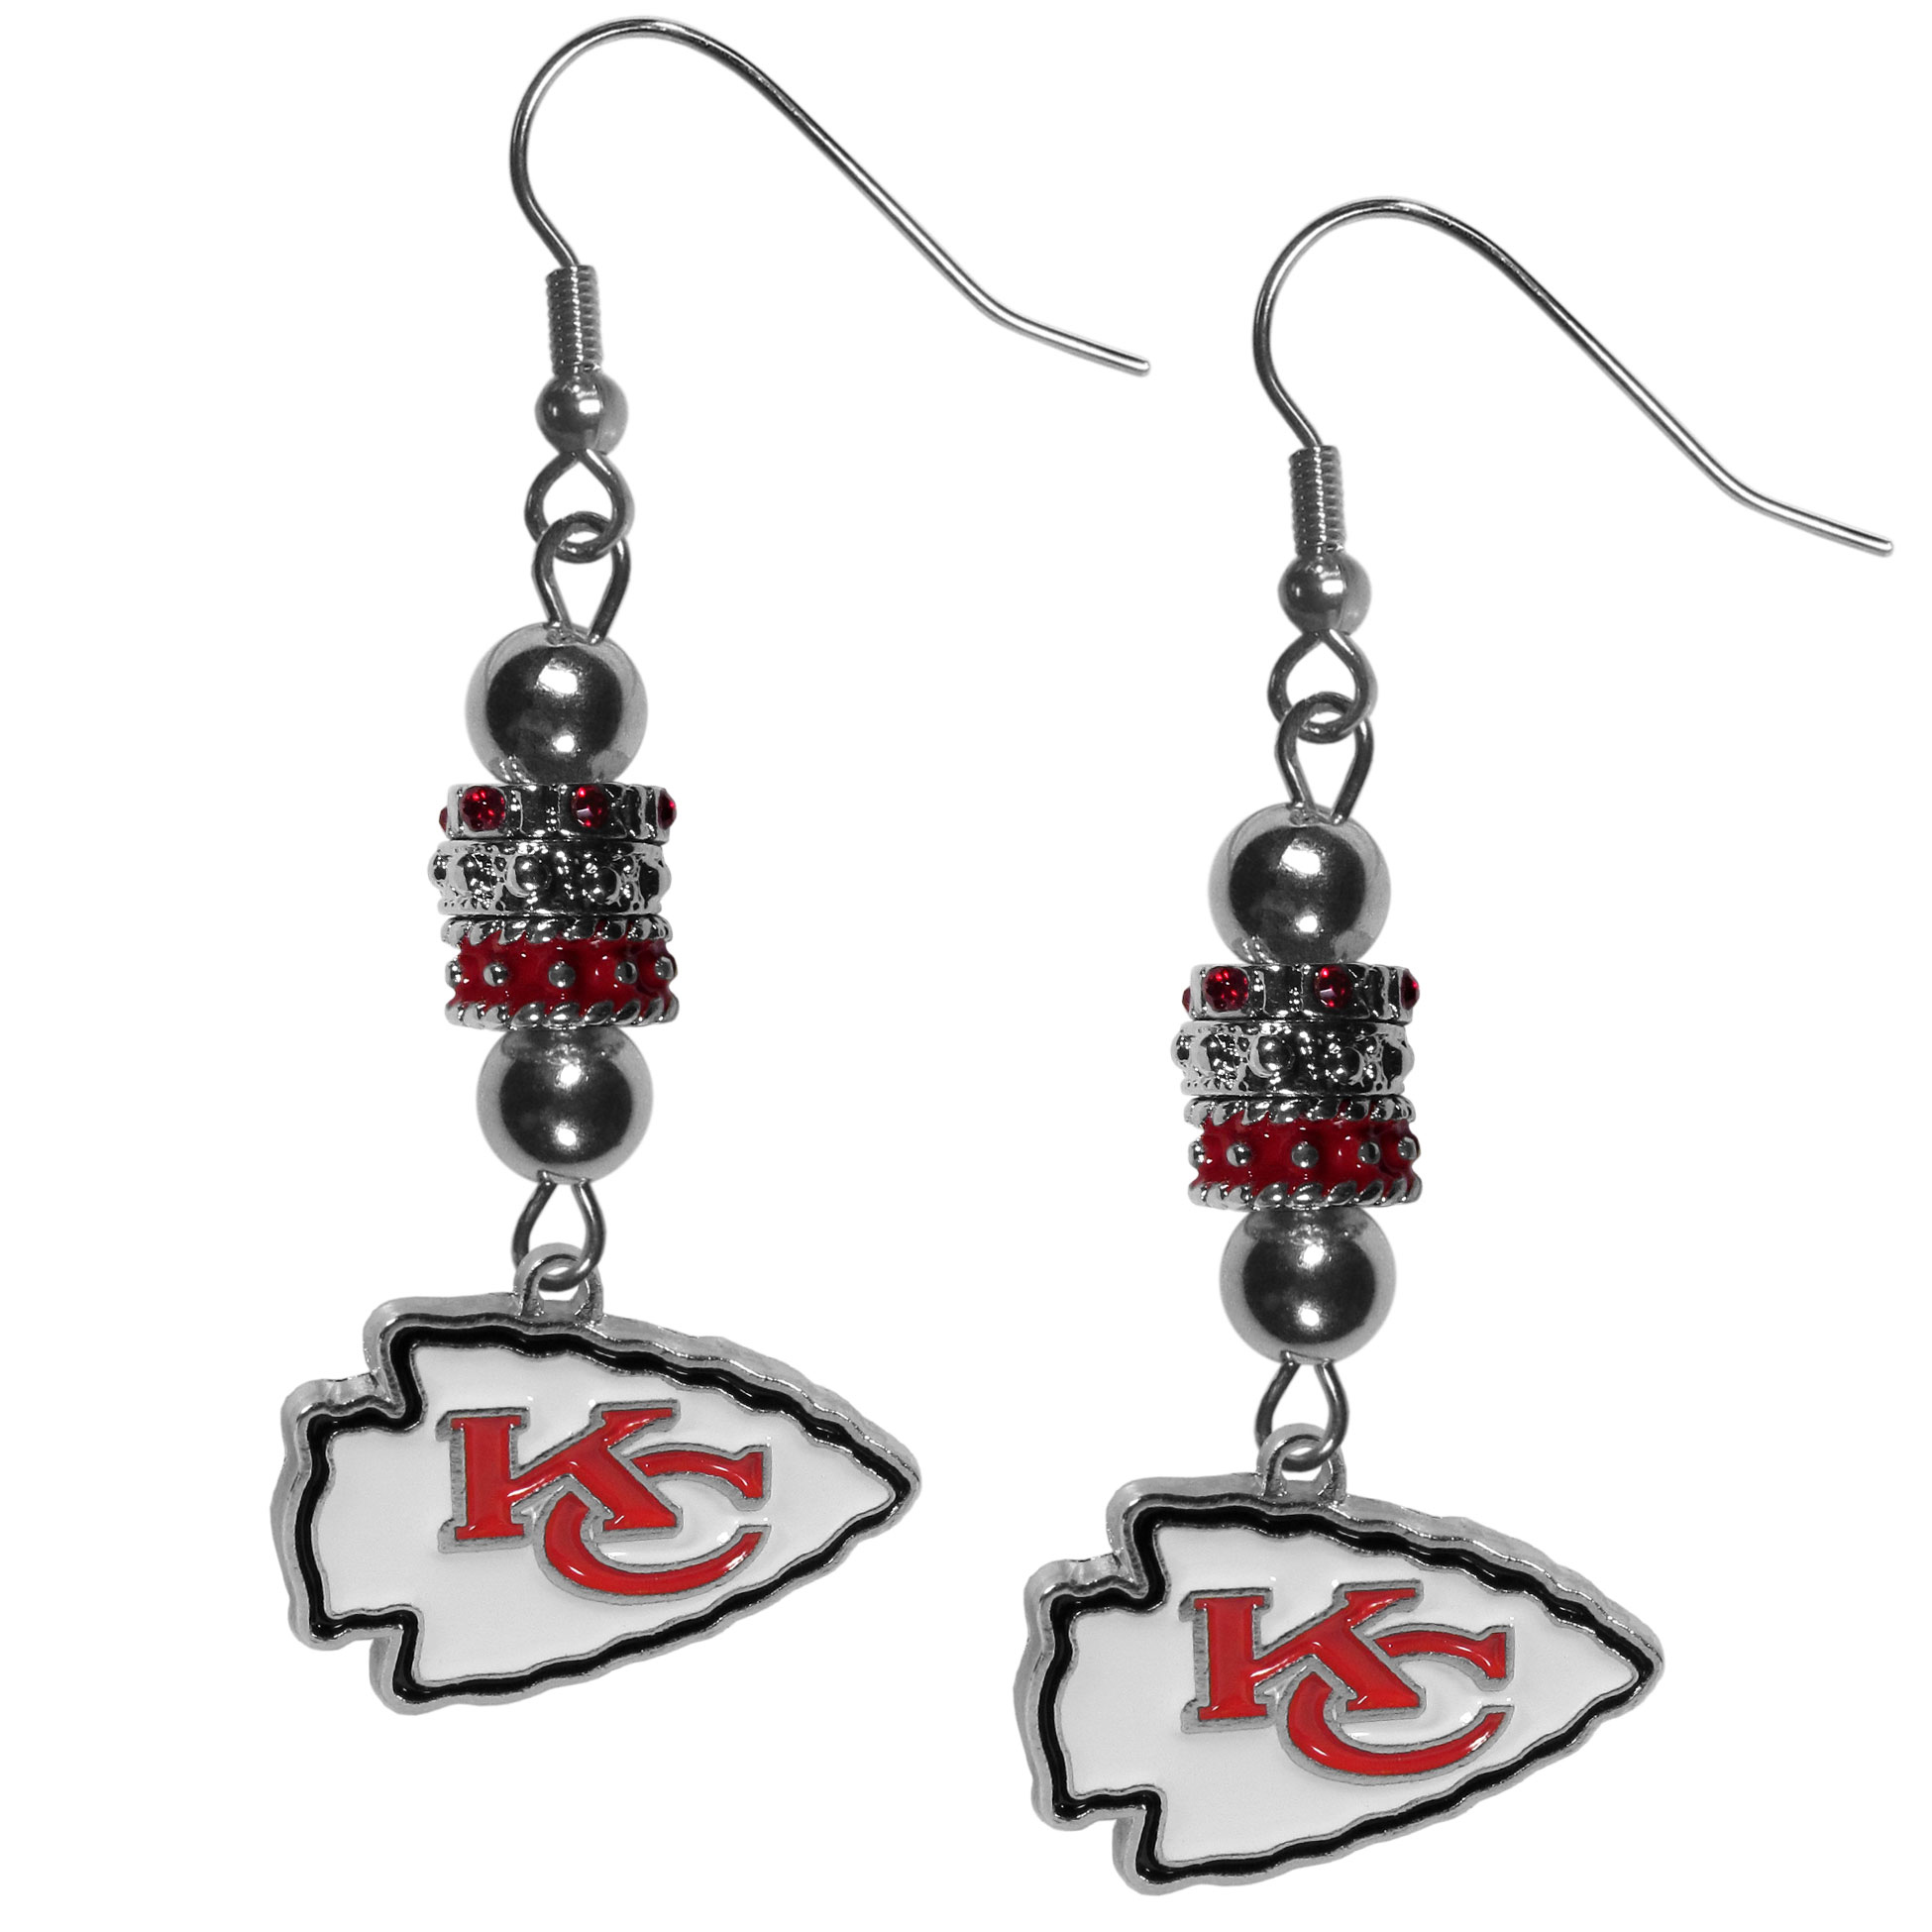 Kansas City Chiefs Euro Bead Earrings - These beautiful euro style earrings feature 3 euro beads and a detailed Kansas City Chiefs charm on hypoallergenic fishhook posts.